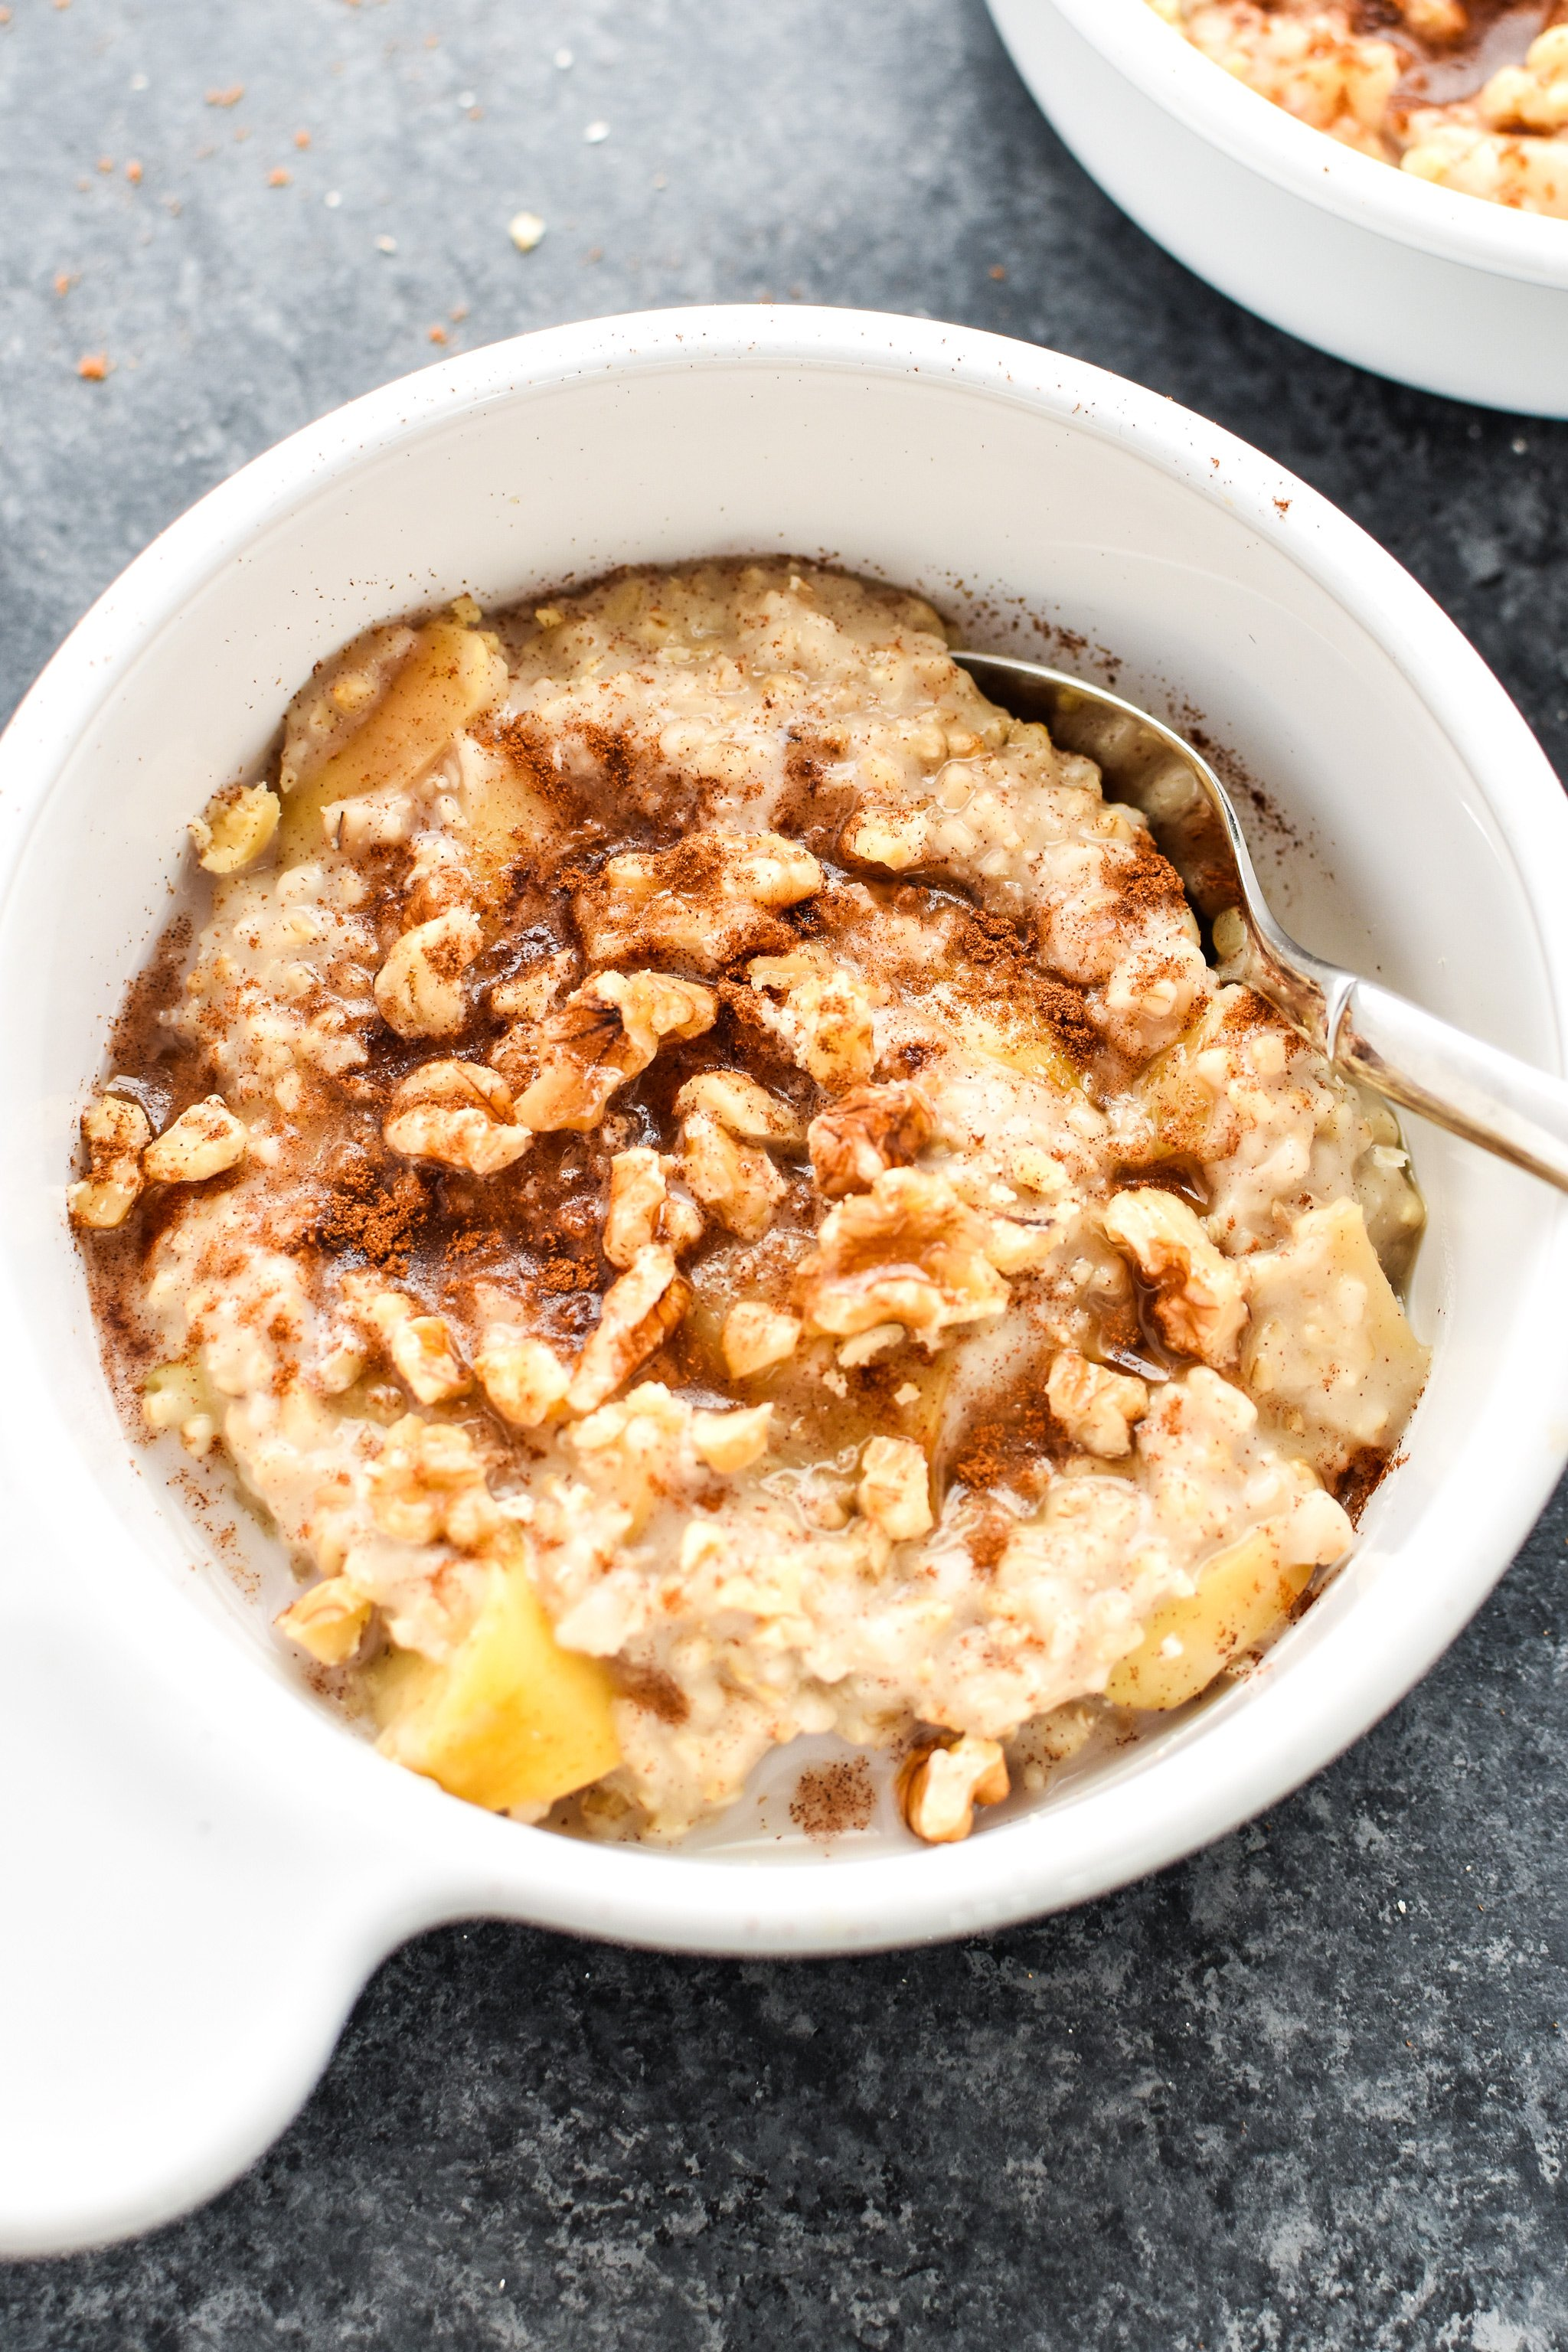 A bowl of cooked oatmeal with apples, cinnamon and walnuts.